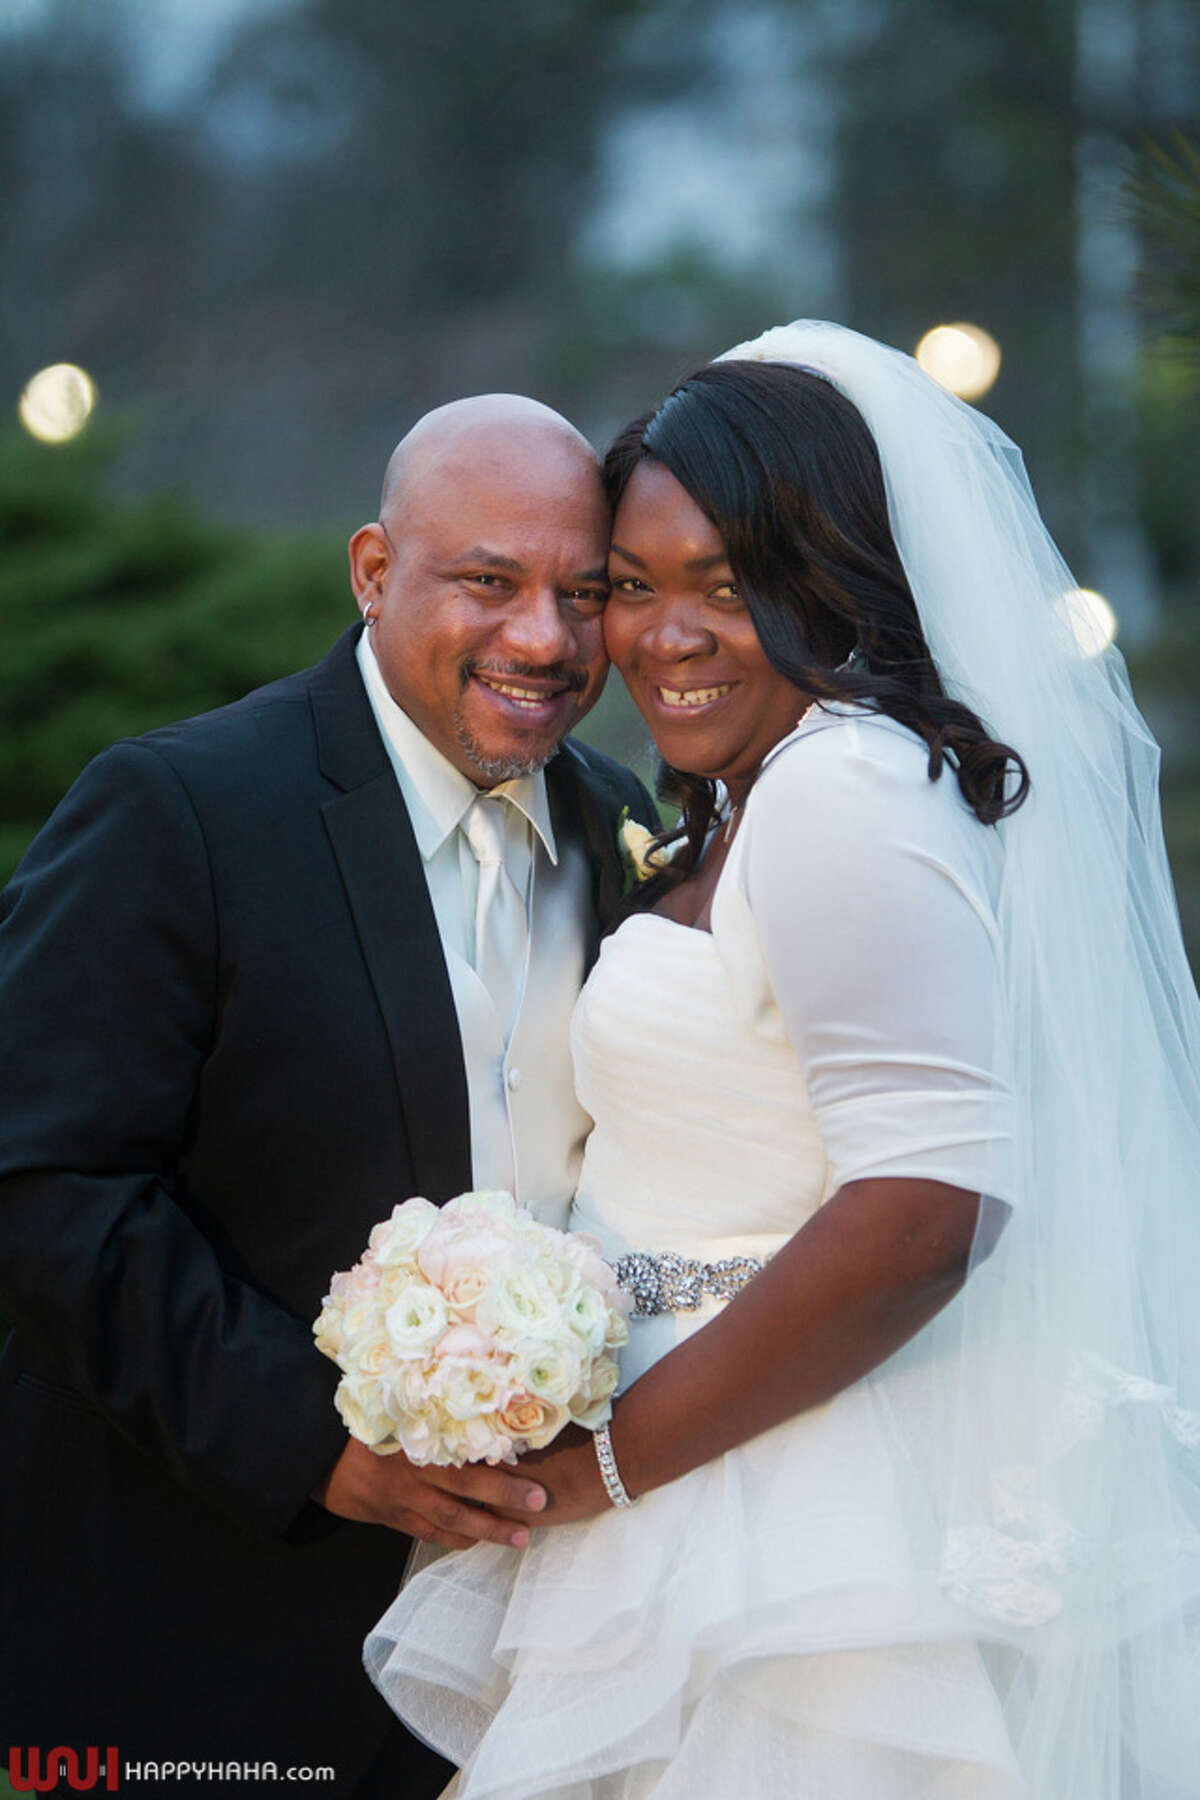 Charmaine Mercedes Davis, daughter of Elisha and Beatrice Davis of Stamford, married Lawrence Benson Ford, Sr, at the Stamford Marriott Hotel & Spa in January.